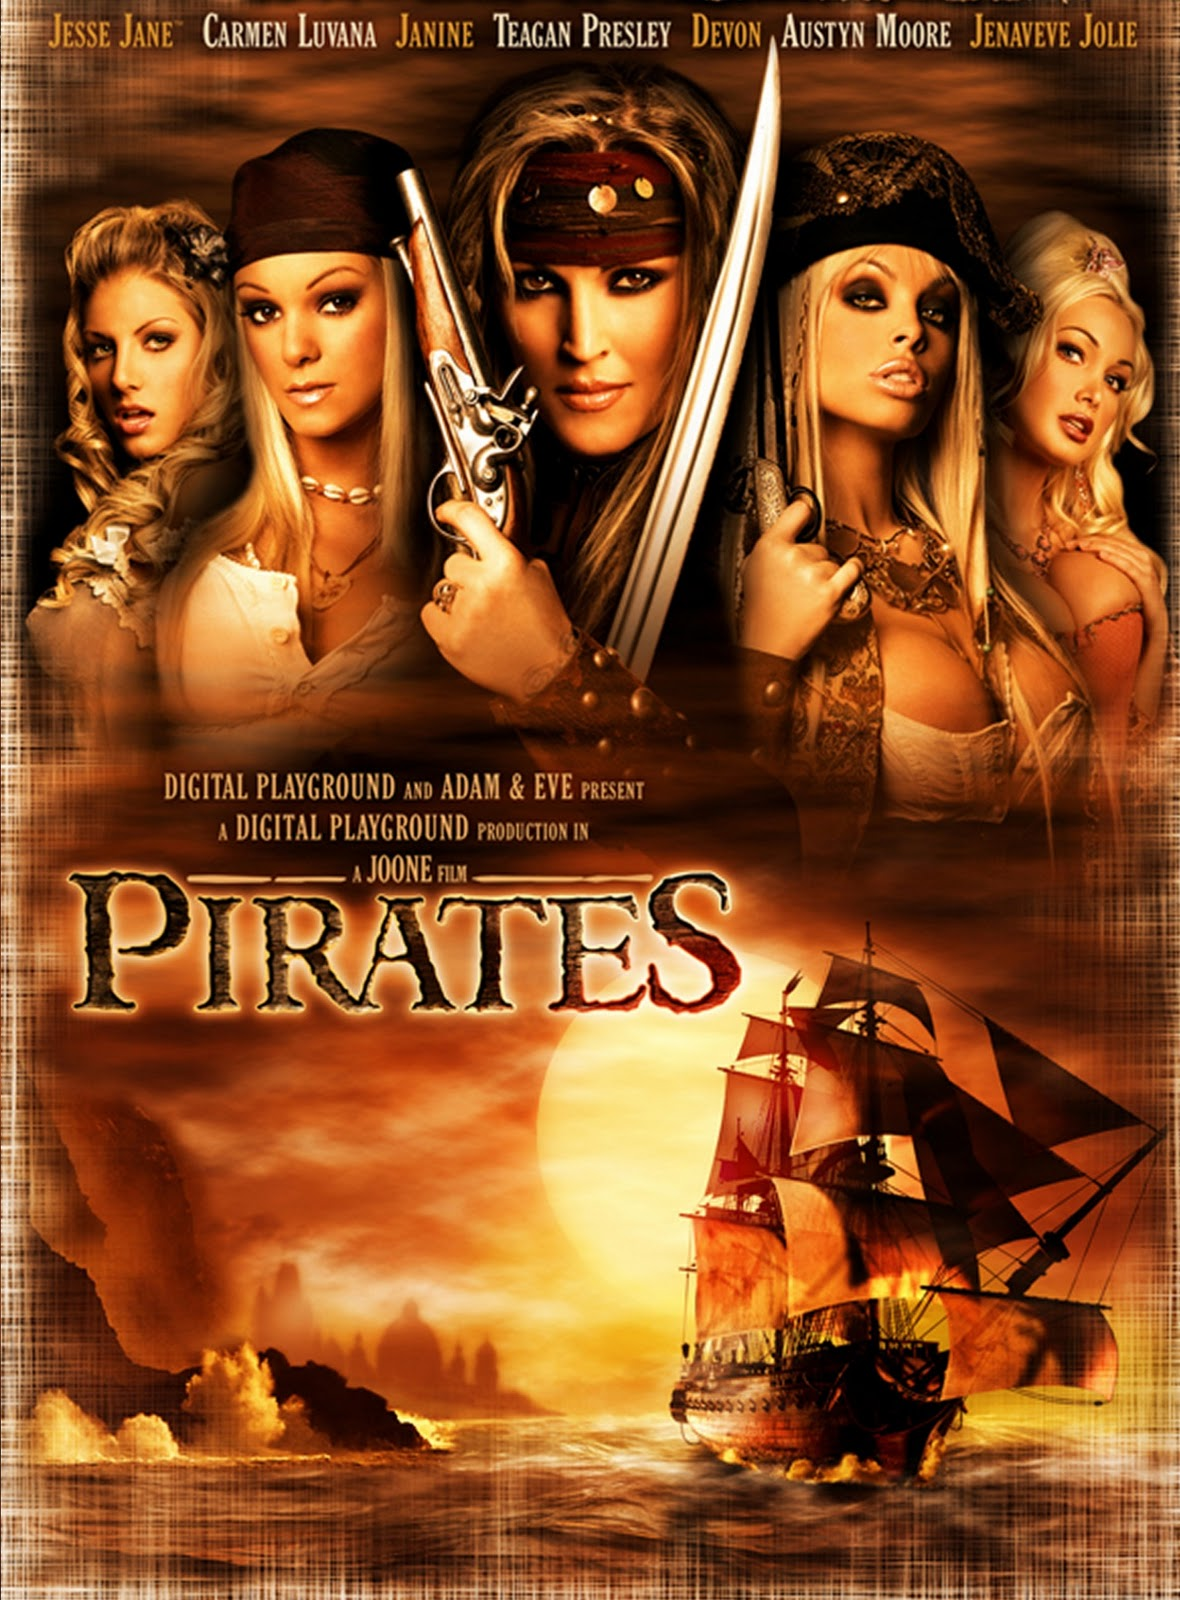 Pirate sex movies download nackt photos